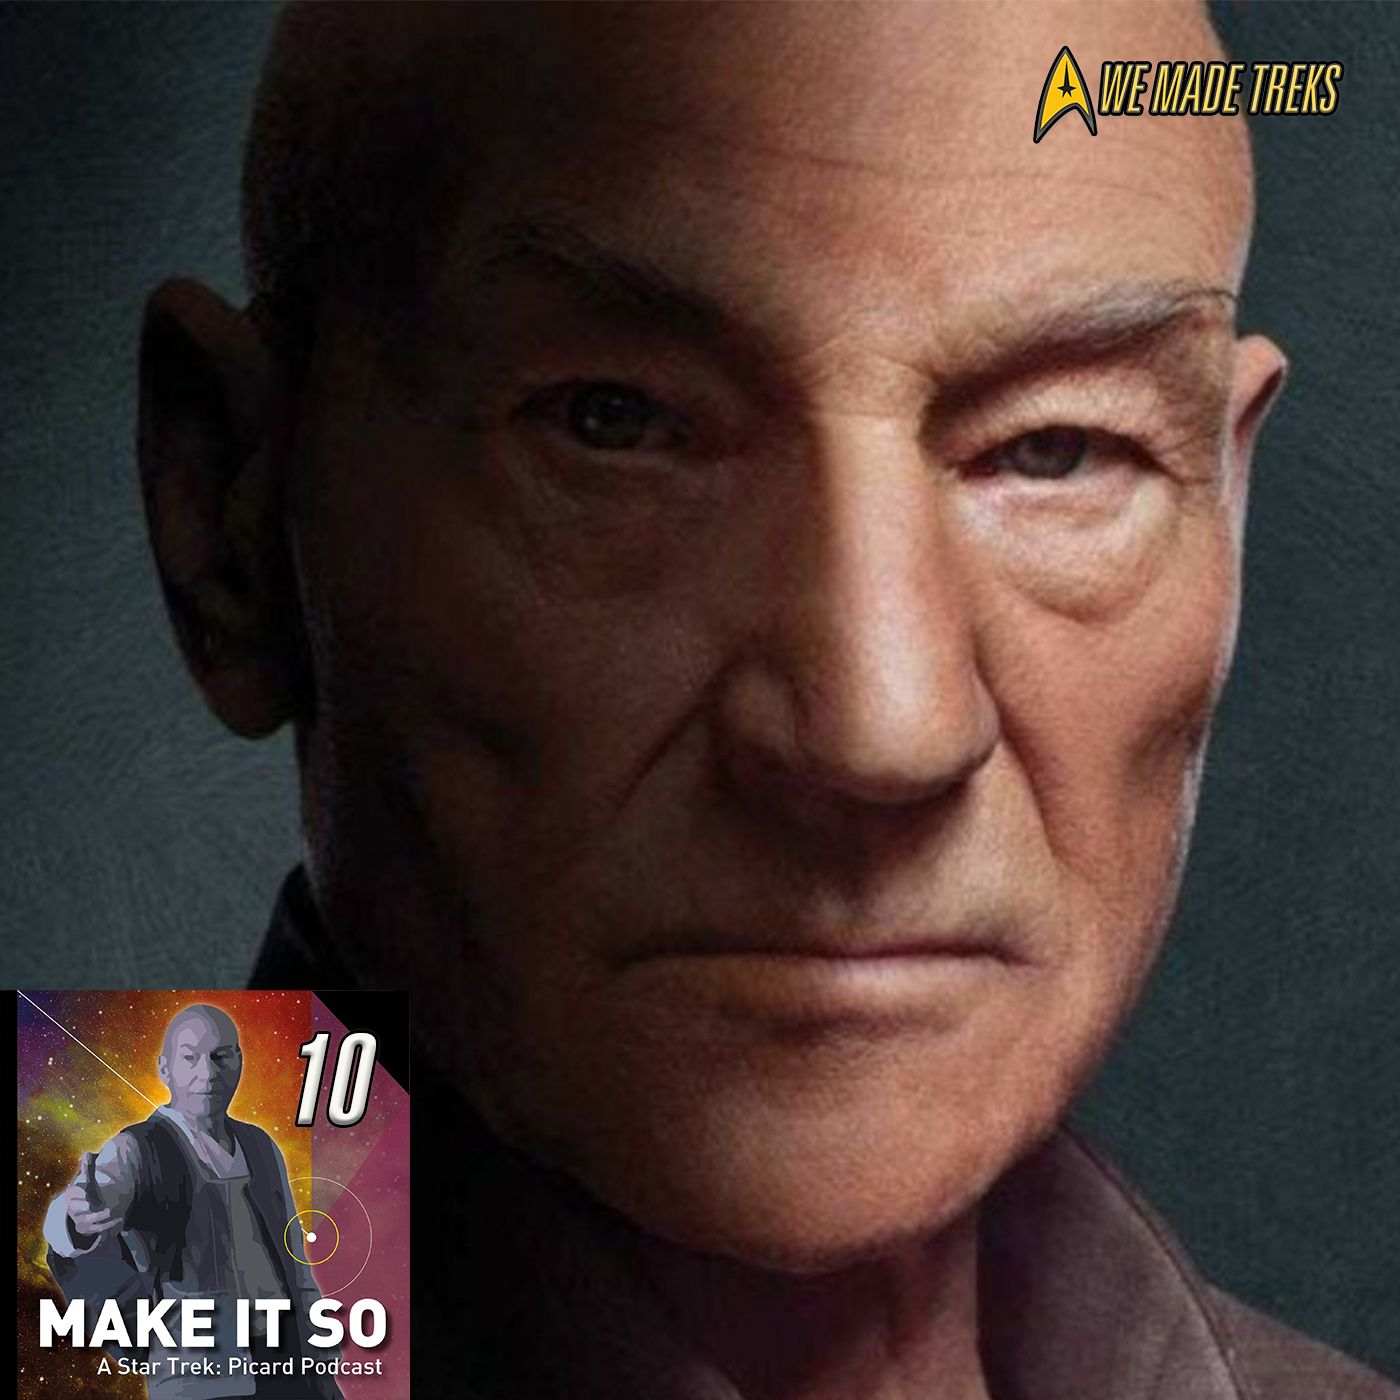 10. The Road to Picard: The Last Best Hope